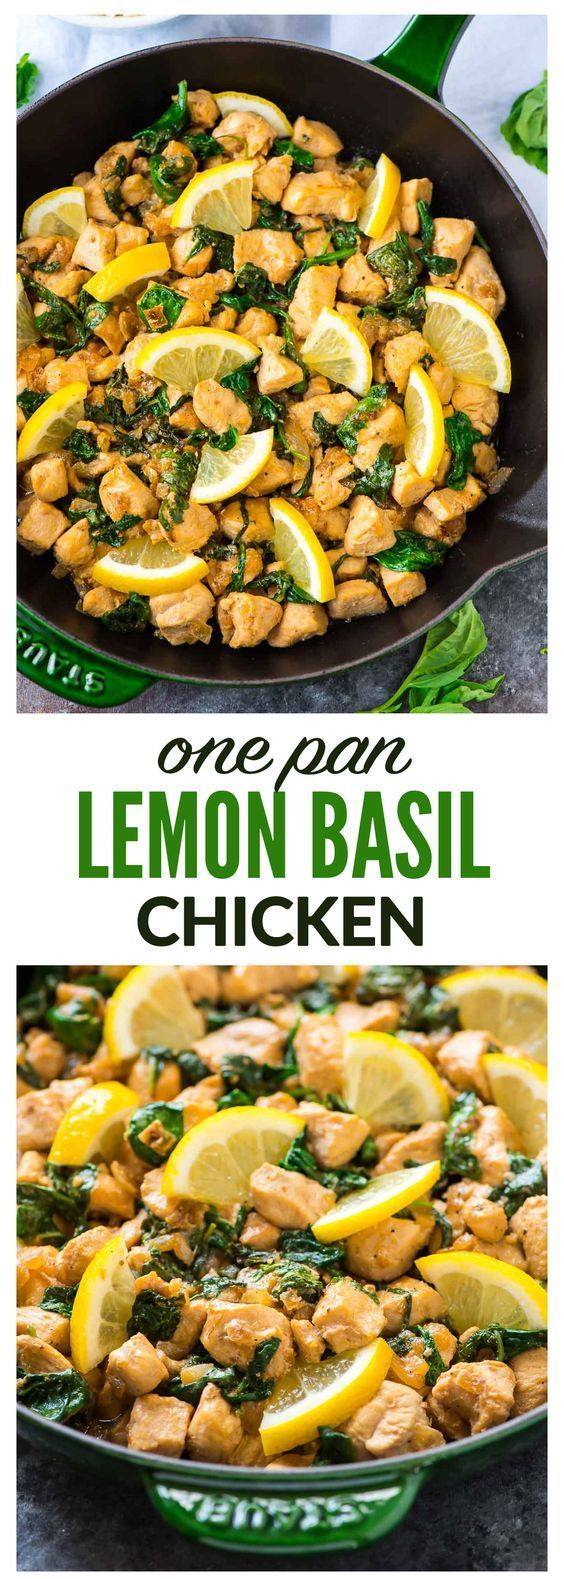 One Pan Lemon Basil Chicken with Spinach – Ready in 20 minutes! Fresh, flavorful, and healthy. Serve with rice for an easy weeknight meal. Recipe at wellplated.com | @wellplated #healthyweeknightmeals